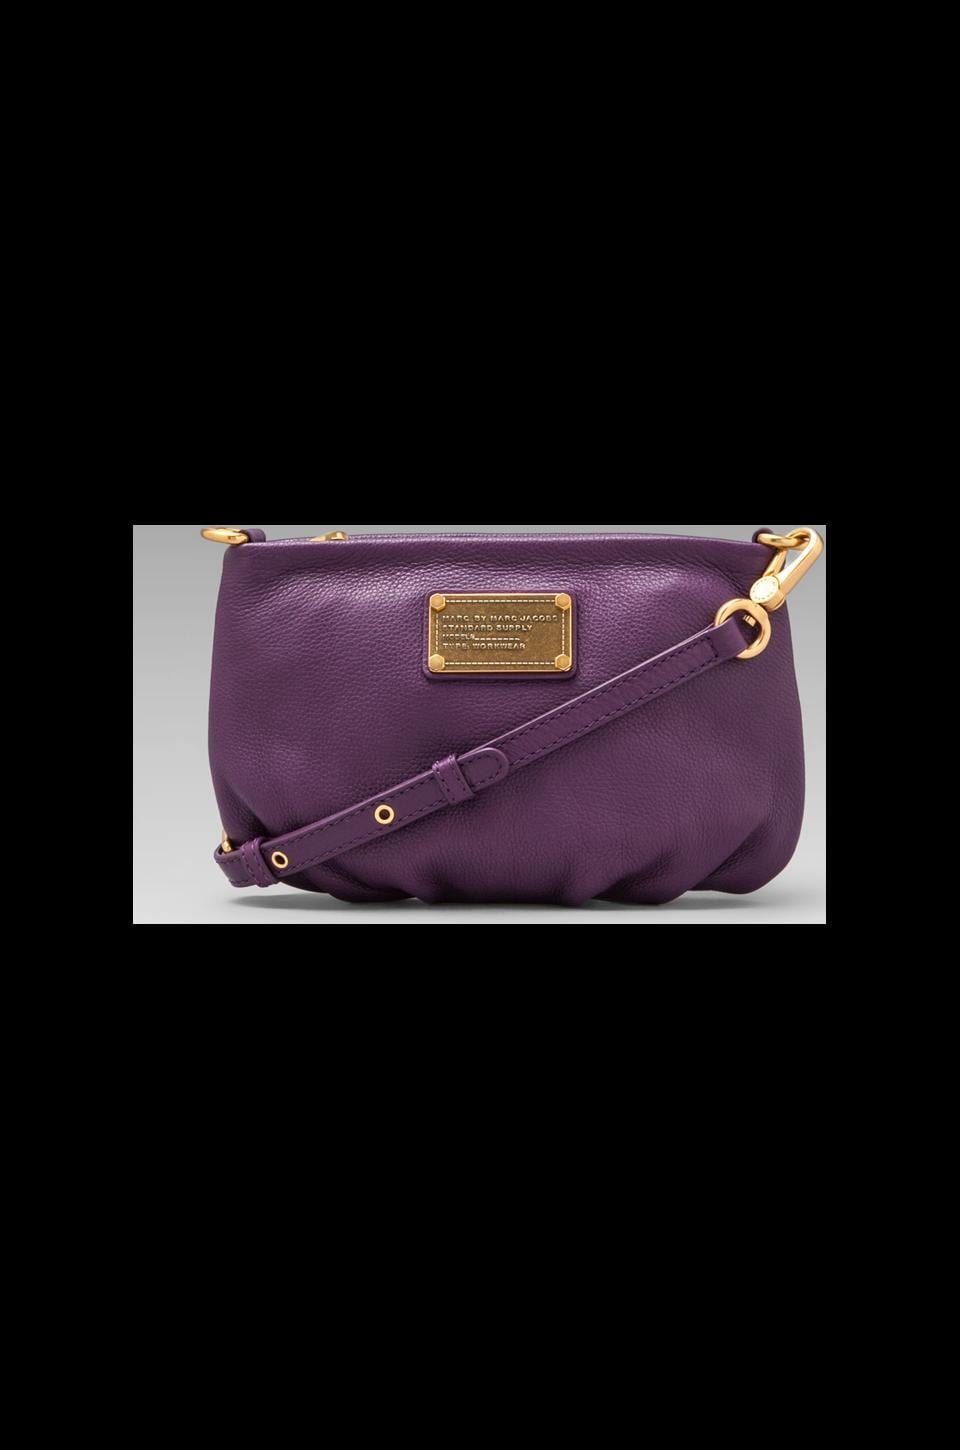 Marc by Marc Jacobs Classic Q Percy Crossbody in Pansy Purple